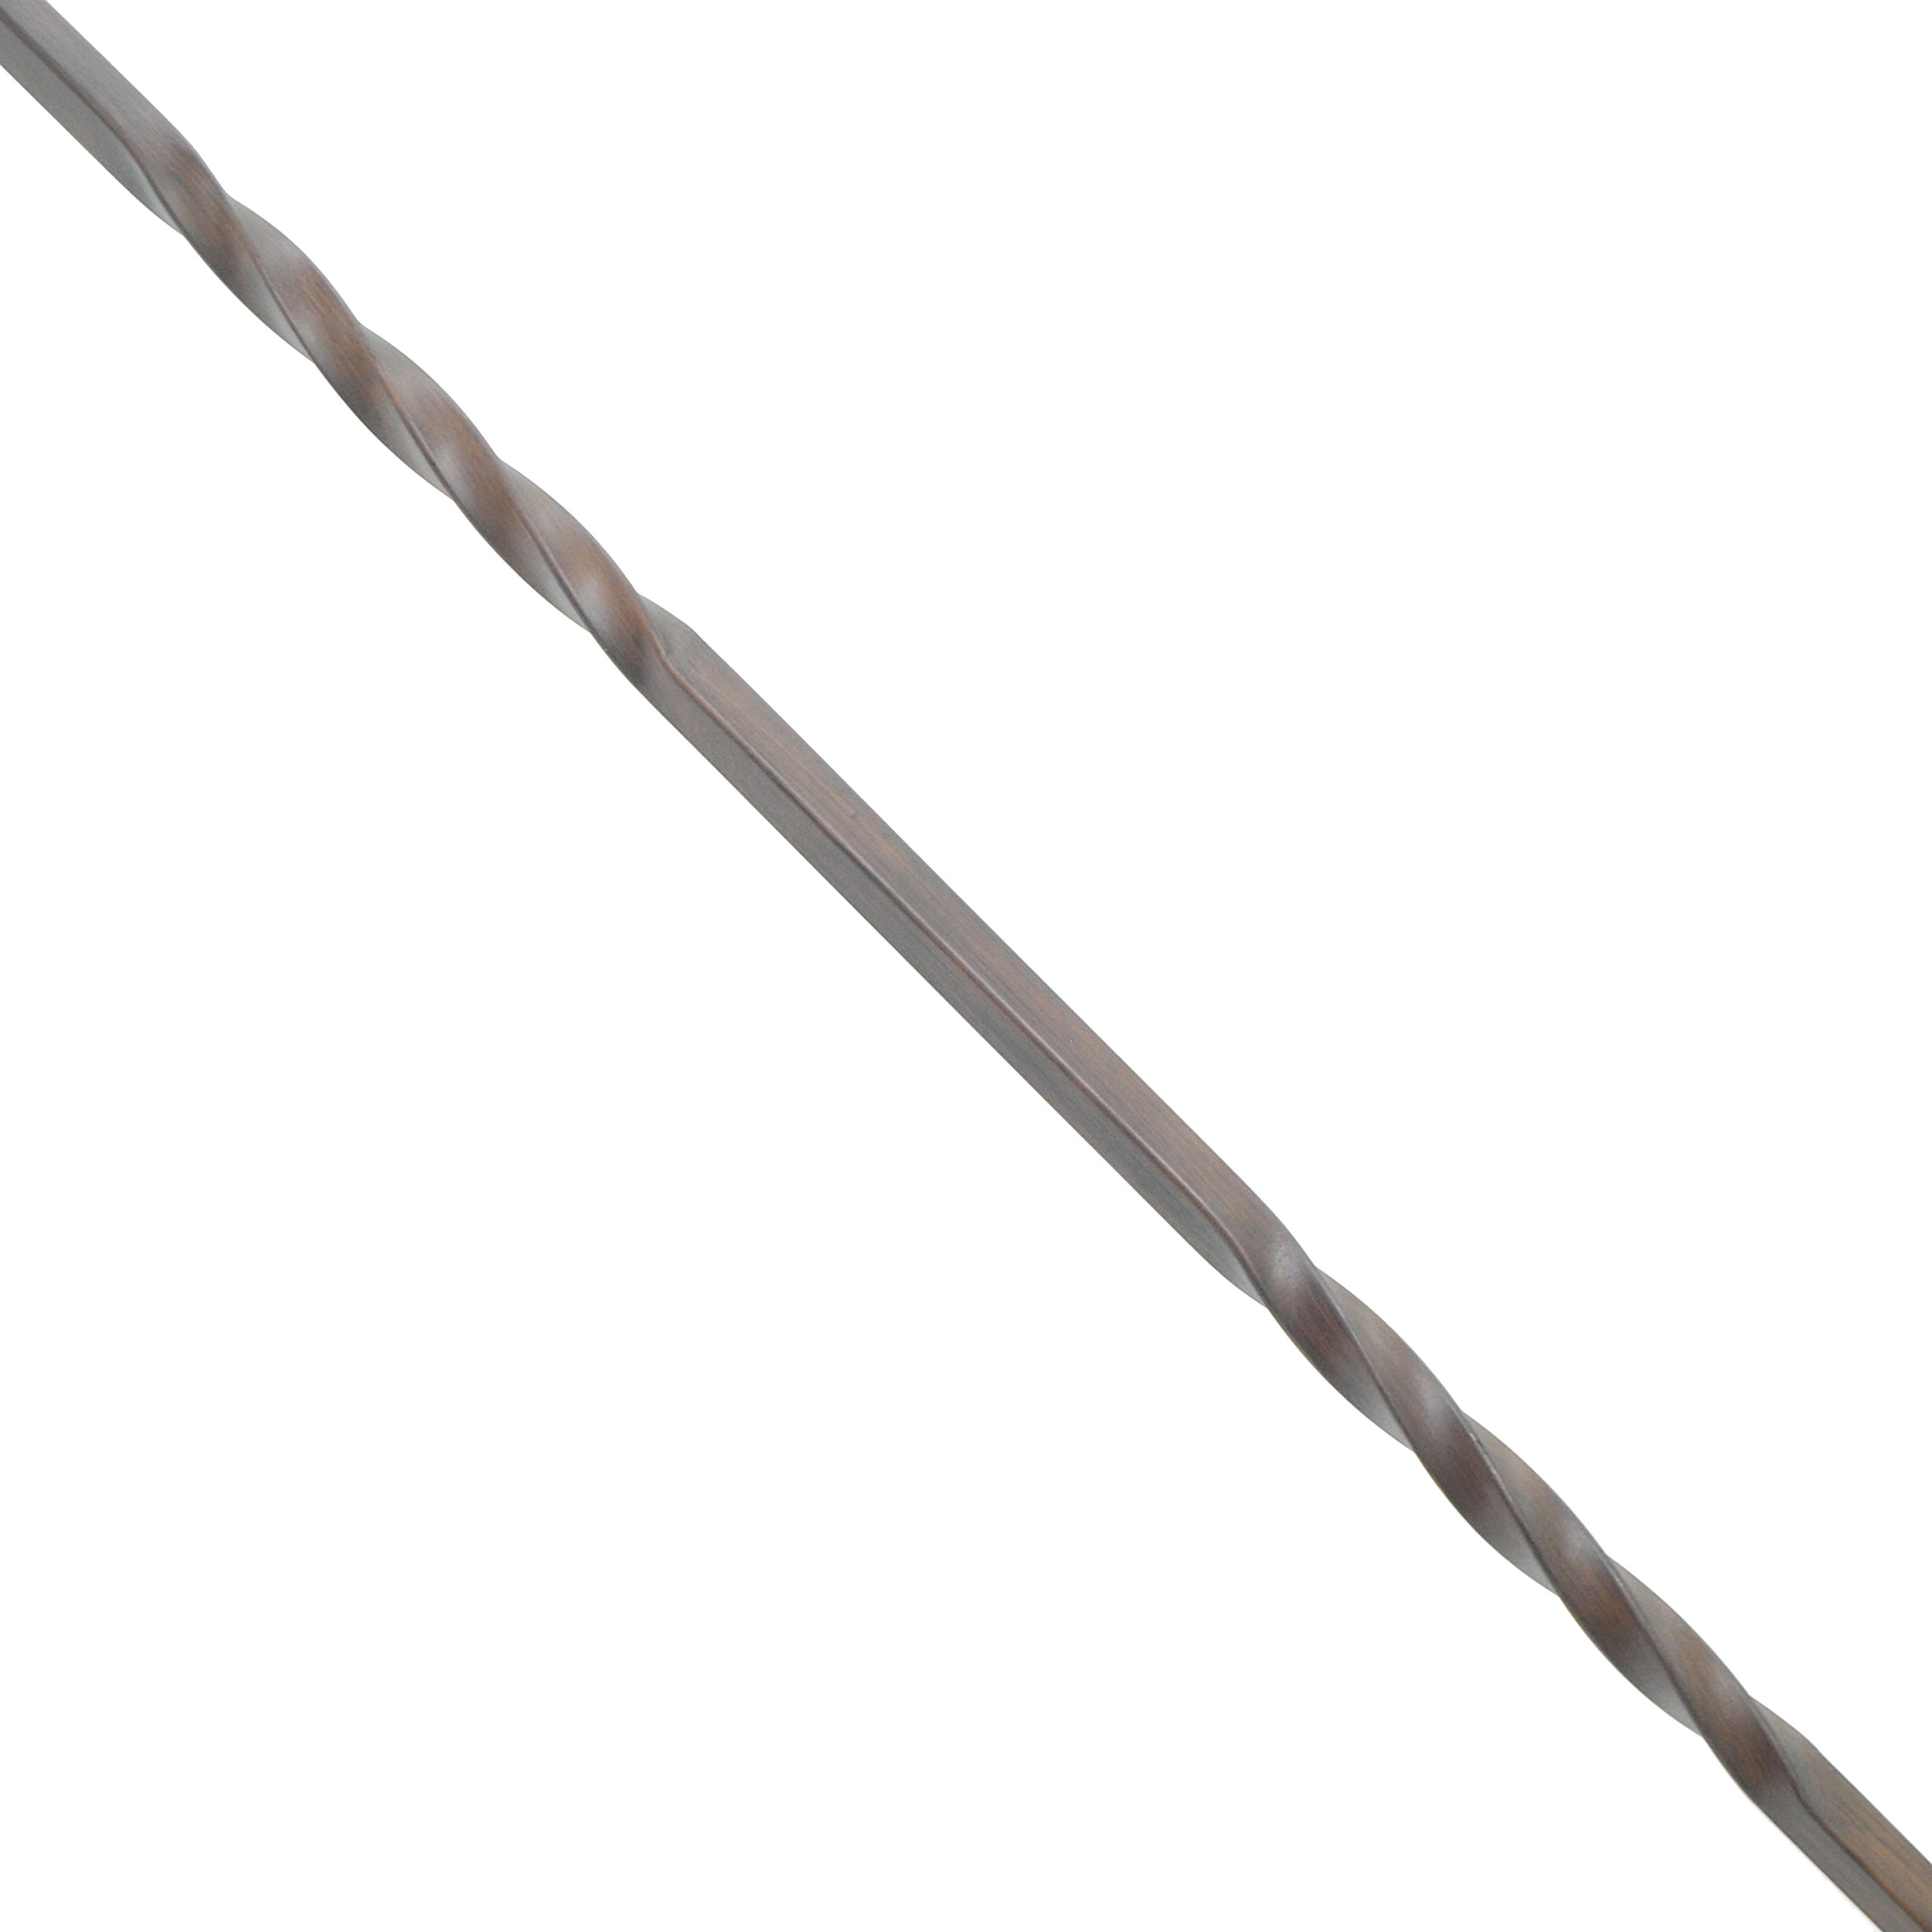 ALEKO BSTR009B Baluster Stair Spindle Supply Double Twist Design 1/2 Inch Oil Rubbed Cast Iron Bronze Finished Lot of 10